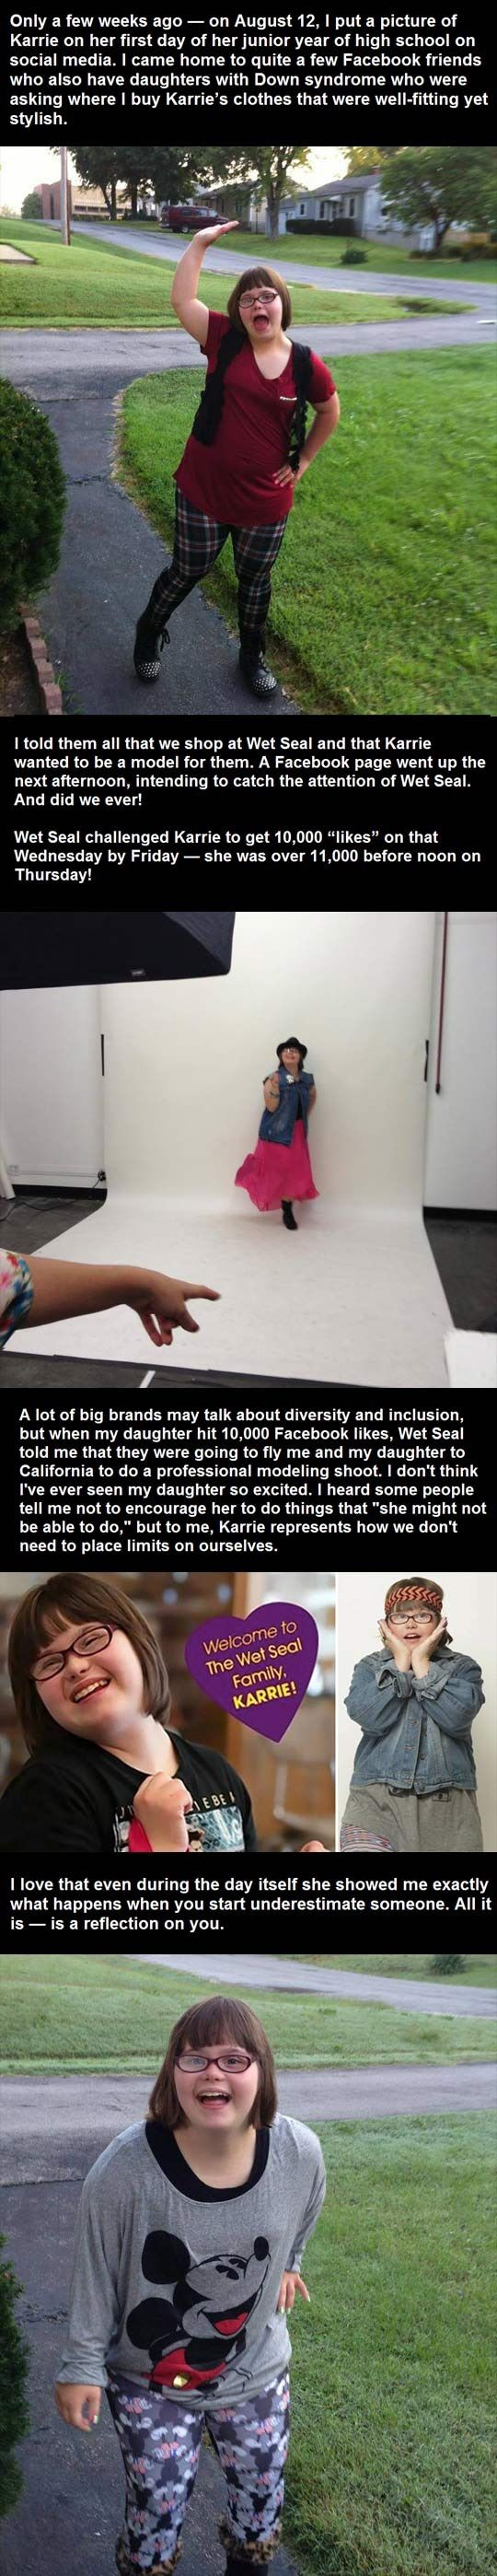 True diversity is achieved when we no longer see differences, only achievements!